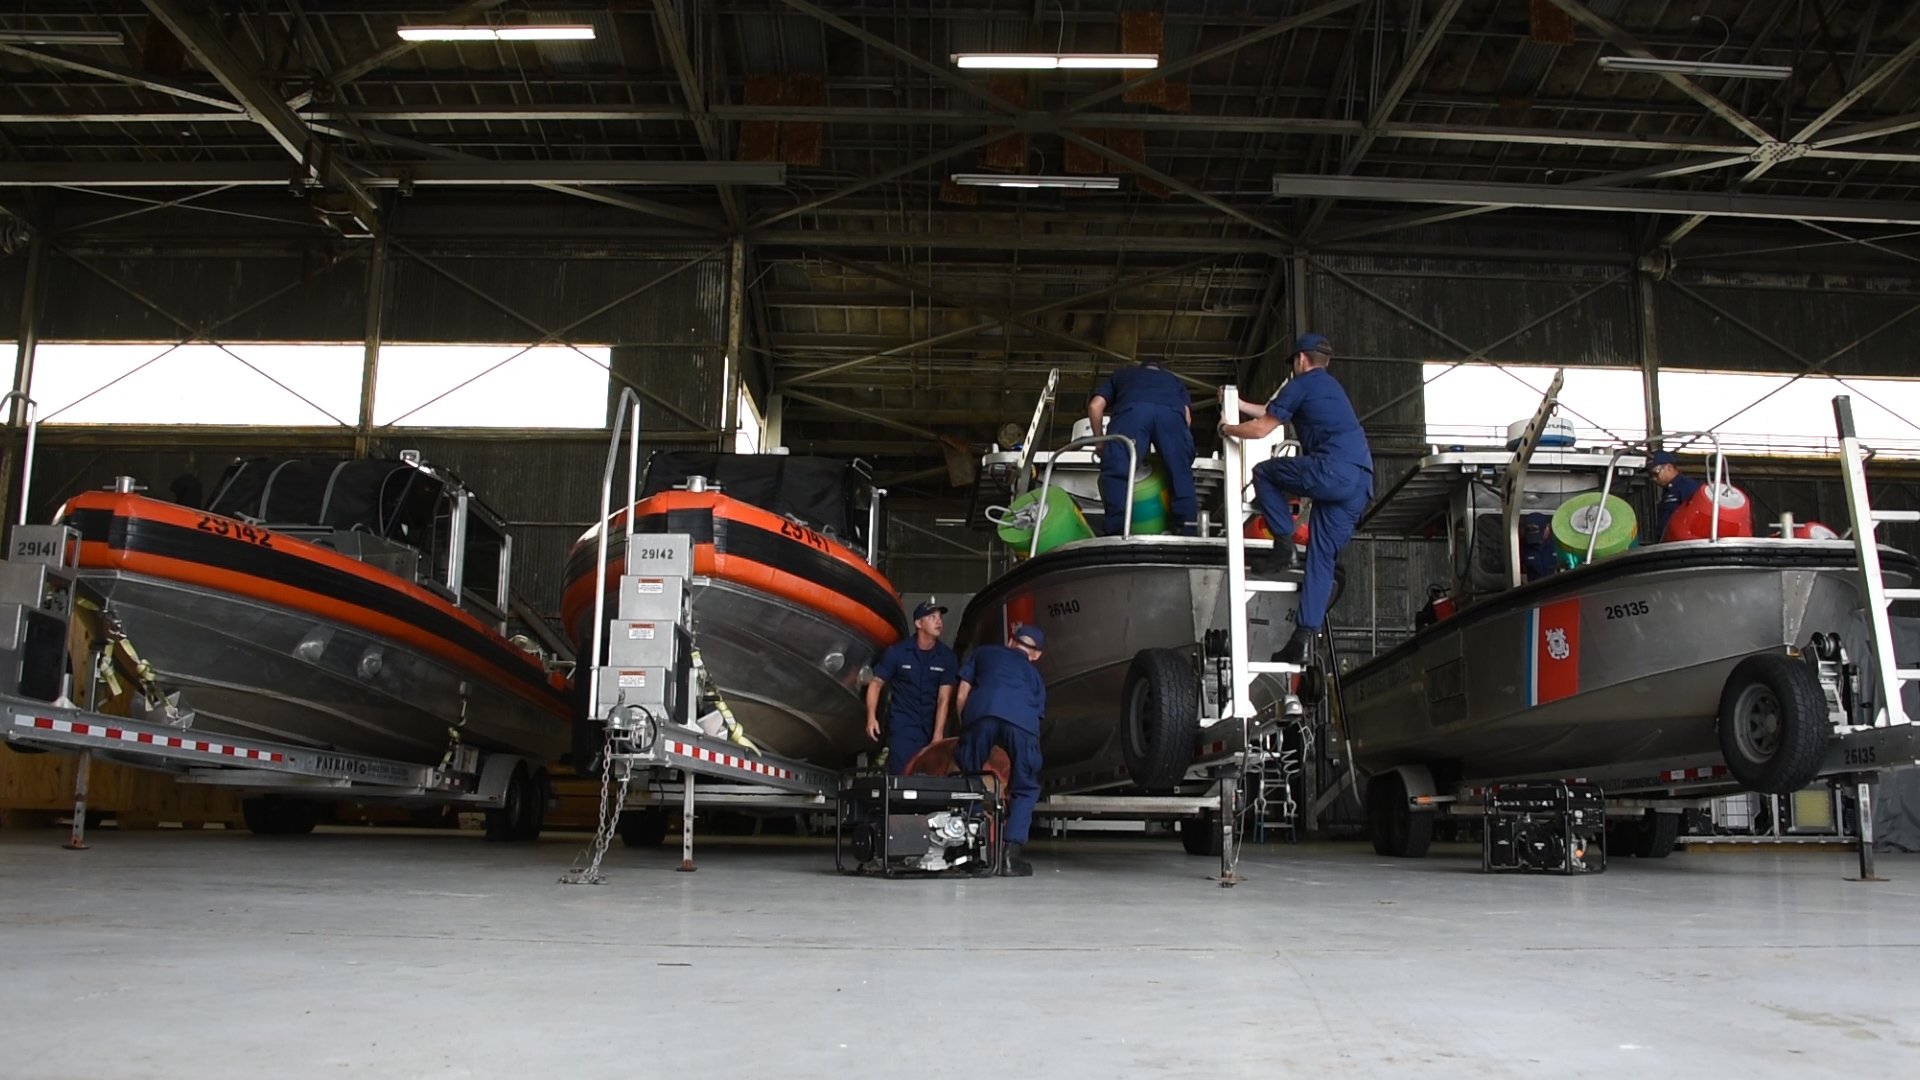 Coast Guard pre-stages assets for Hurricane Florence post-storm response